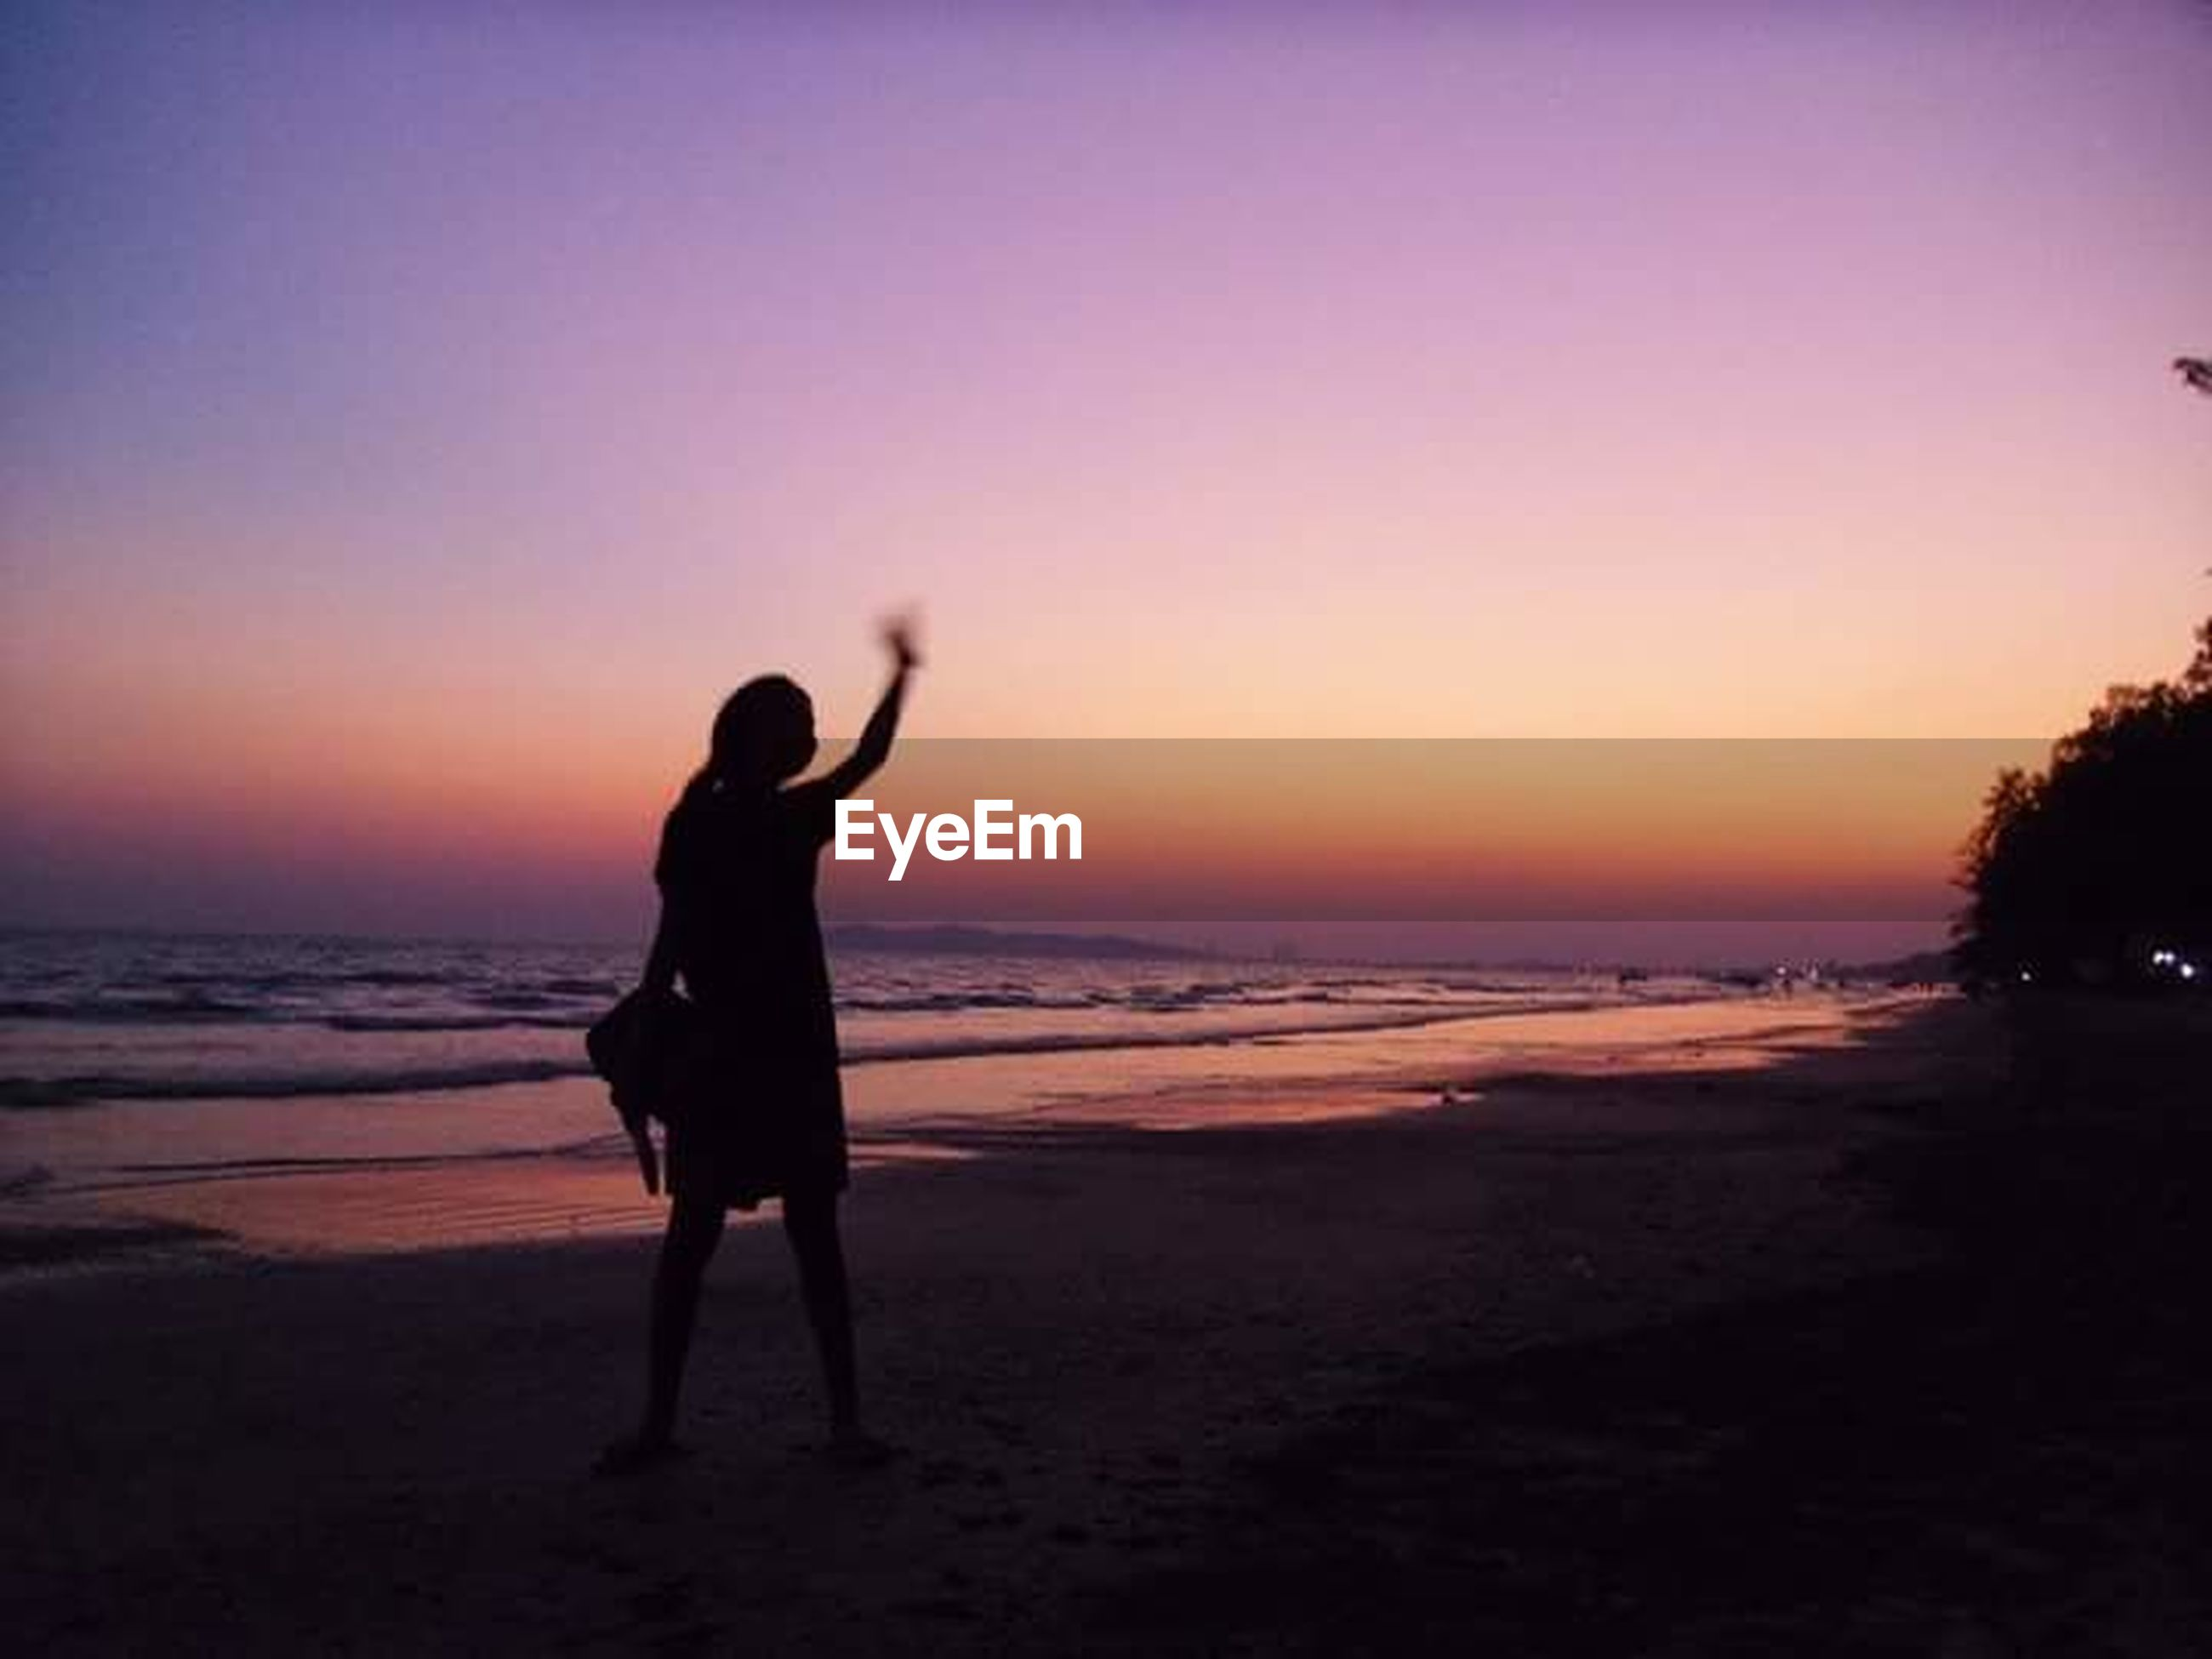 beach, sea, sunset, horizon over water, shore, water, silhouette, sand, leisure activity, scenics, standing, lifestyles, beauty in nature, full length, orange color, tranquil scene, clear sky, tranquility